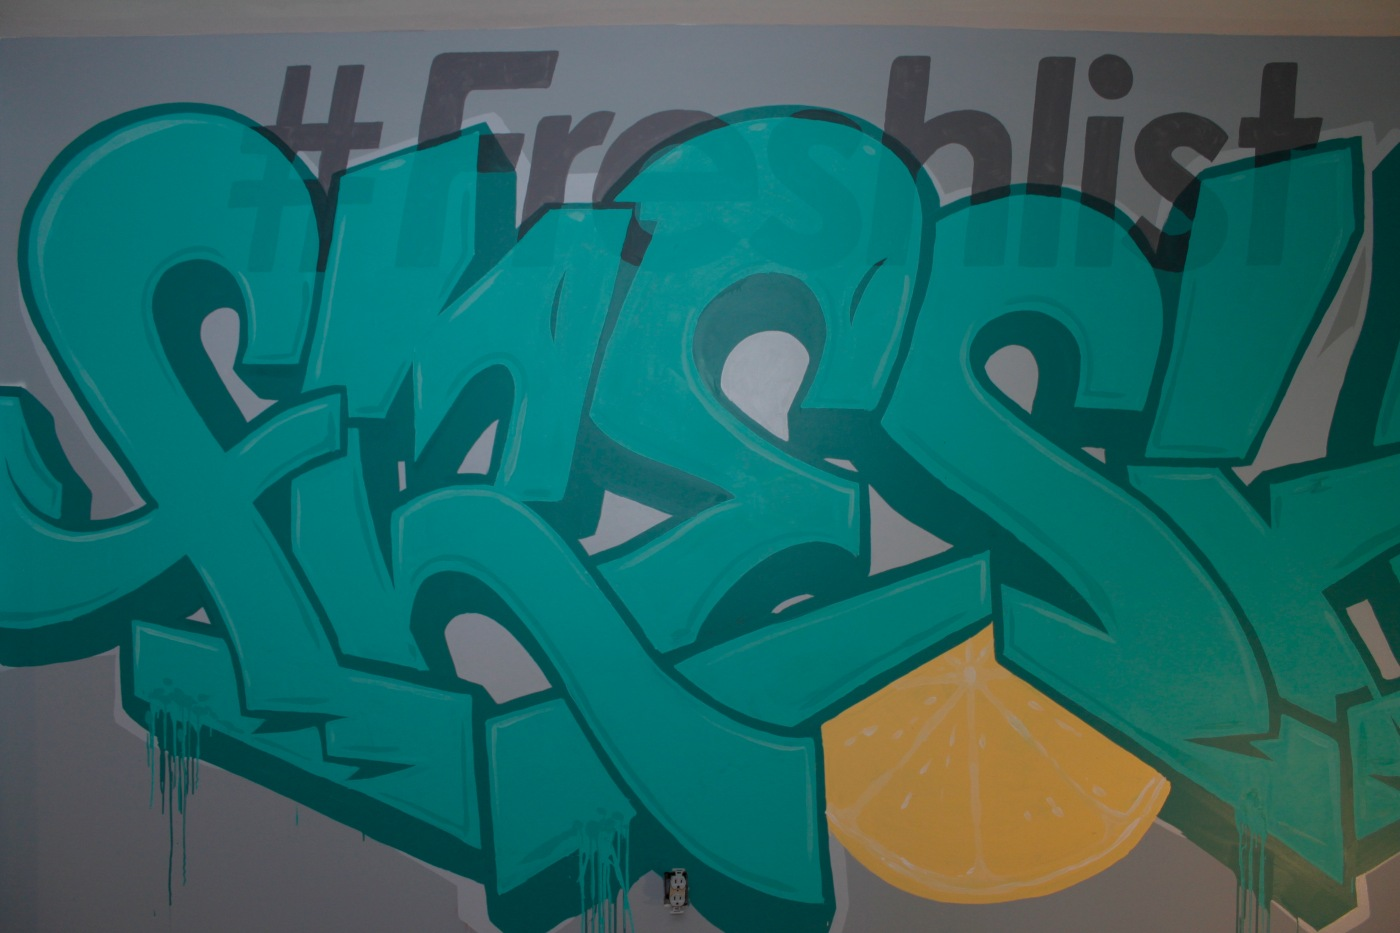 Freshlist graffiti logo